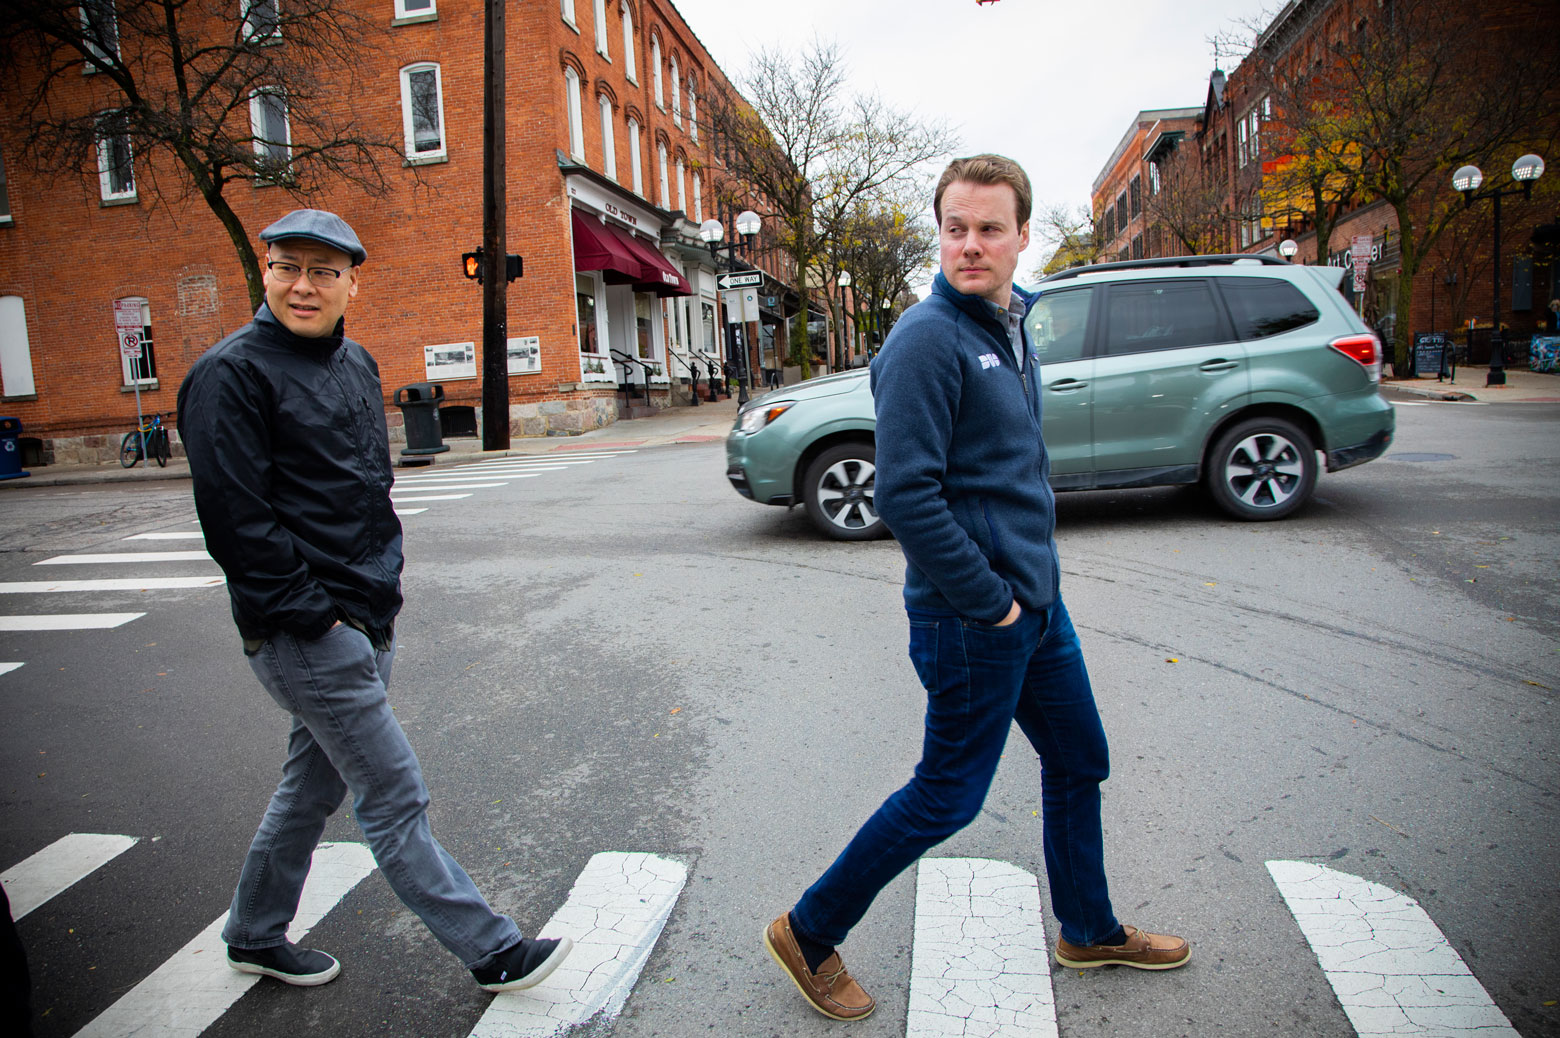 Duo Security co-founders Dug Song and Jon Oberheide crossing Liberty Street in Ann Arbor.